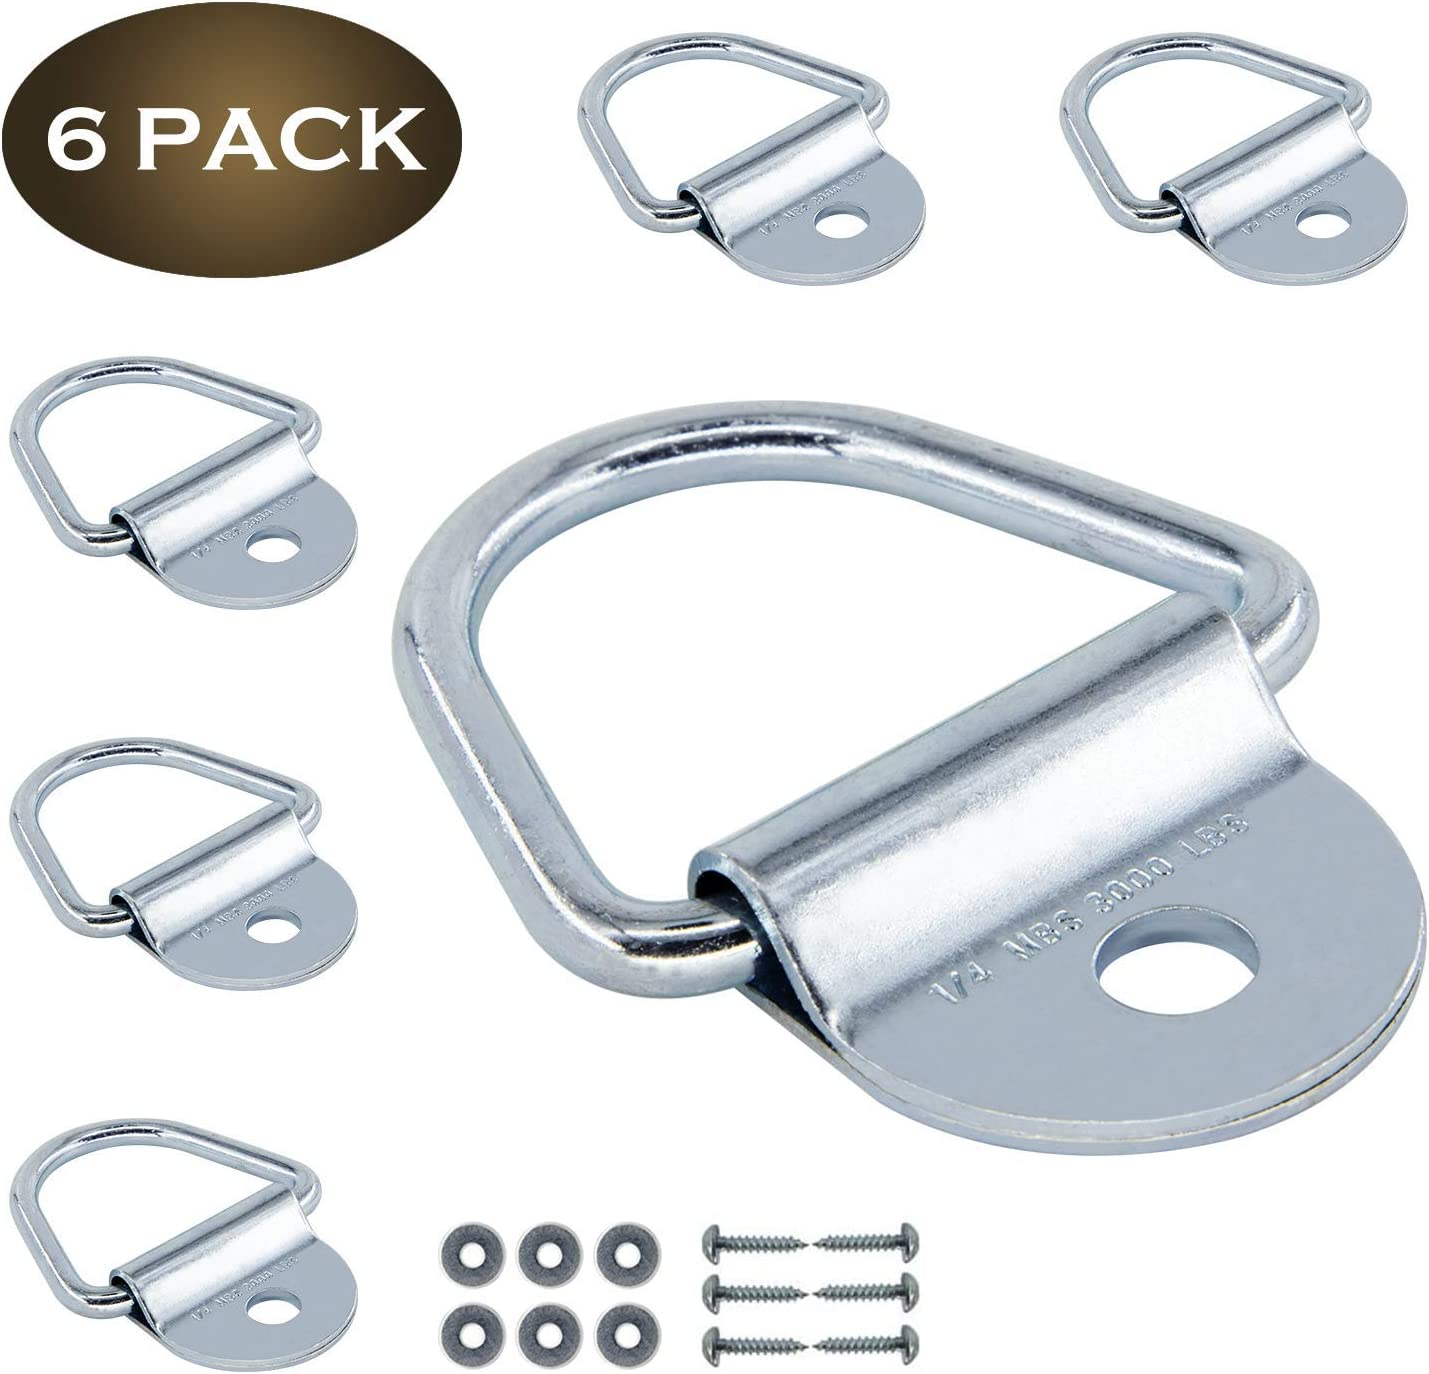 Trailers 6 PCS V-Ring Tie Down Anchors 2 inches Diameter/Steel Bolt-on D-Rings for Cargo on Trucks /Replacement for D-Ring Plastic Flush Mount Pan Fitting Tie Down Anchors Pickups